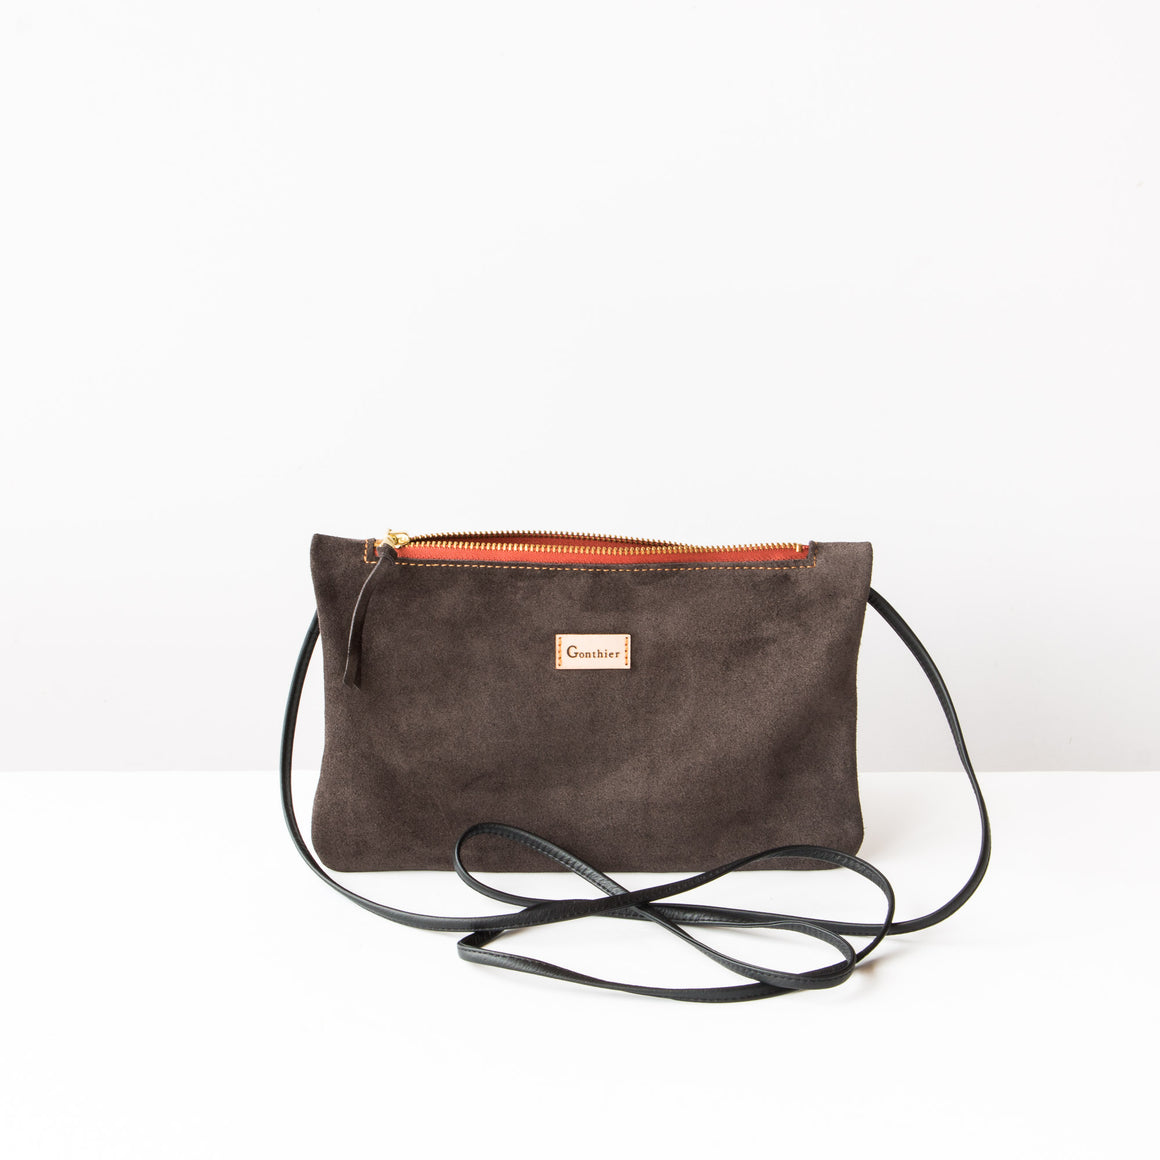 Bordeaux & Khaki - Handmade Small Shoulder Bag in Suede Calfskin - Sold by Chic & Basta